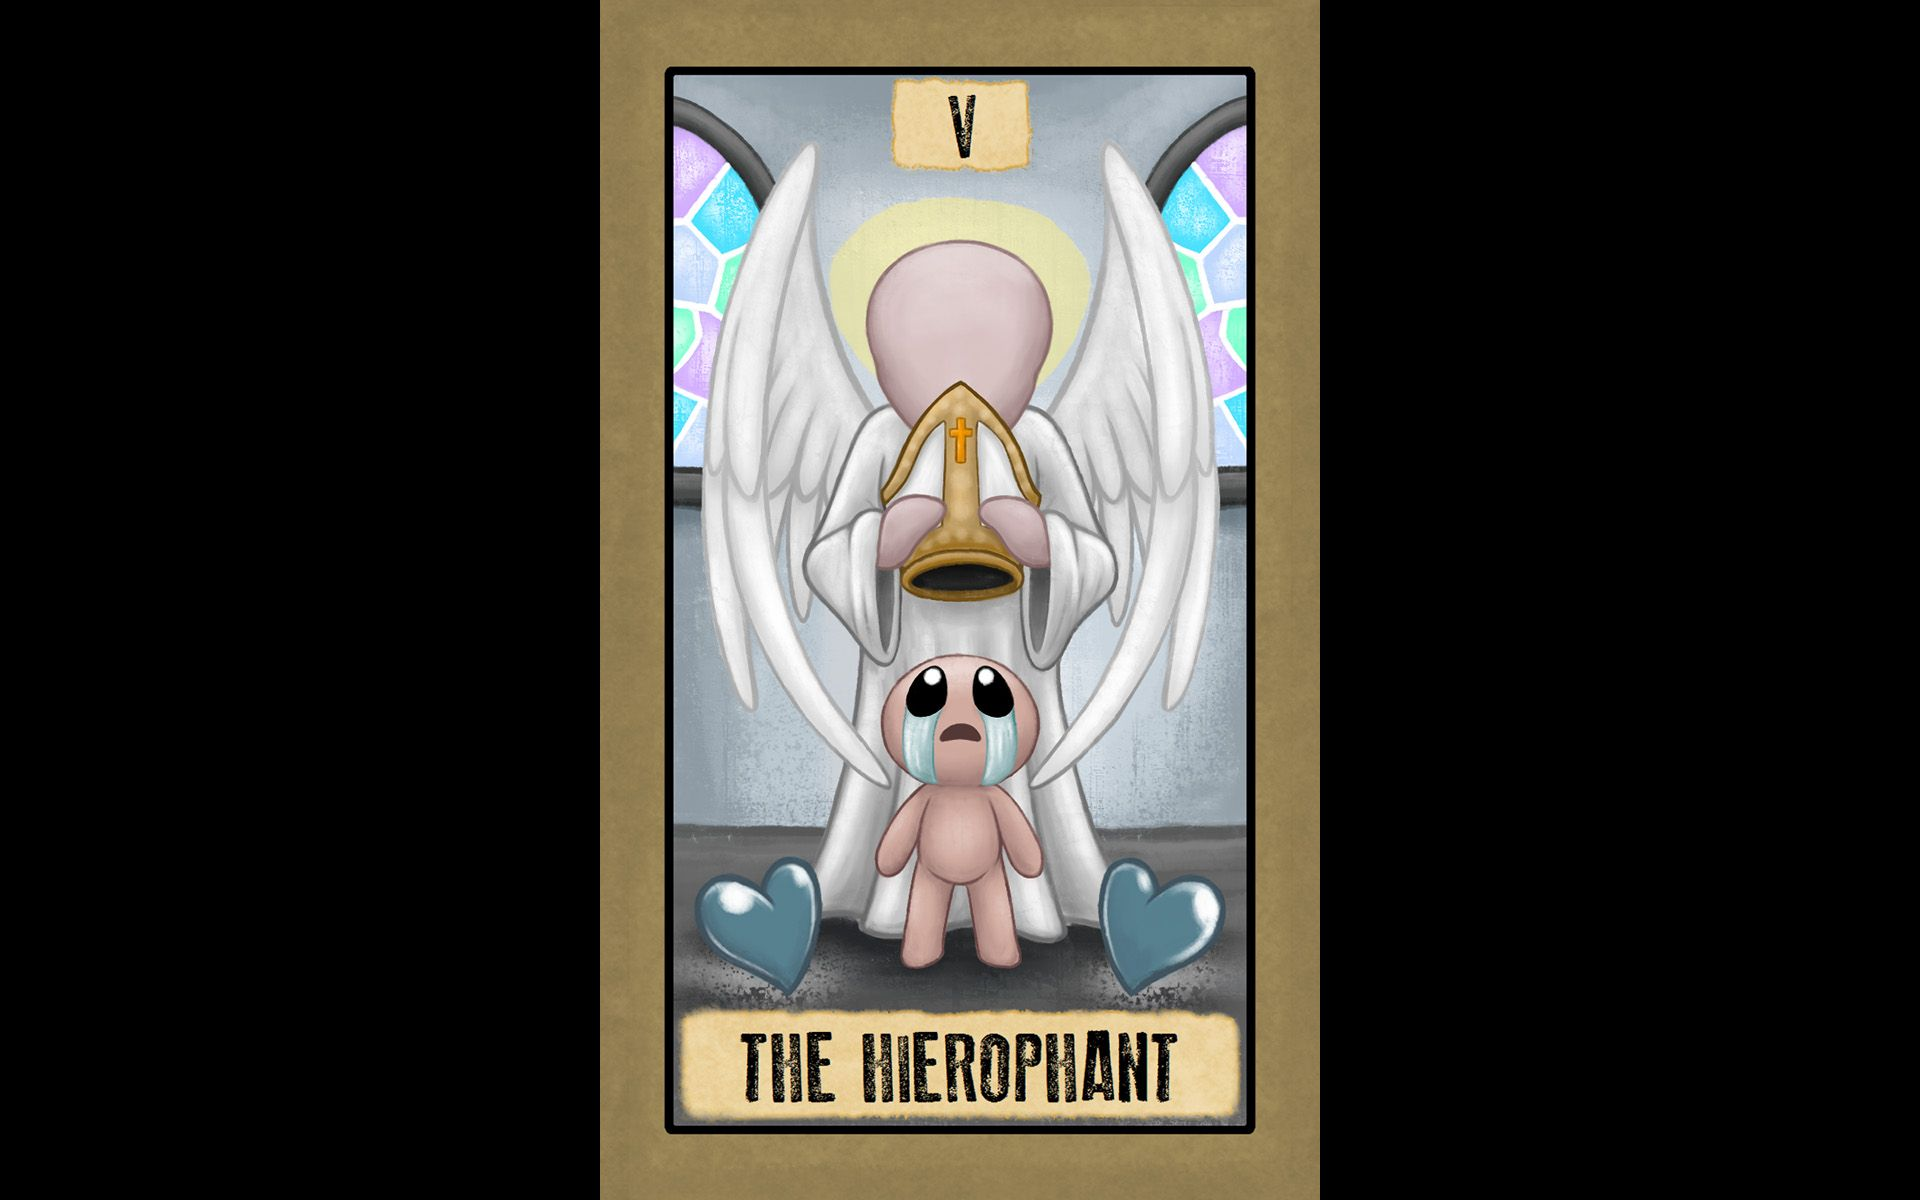 the binding of isaac  v the hierophant  the binding of